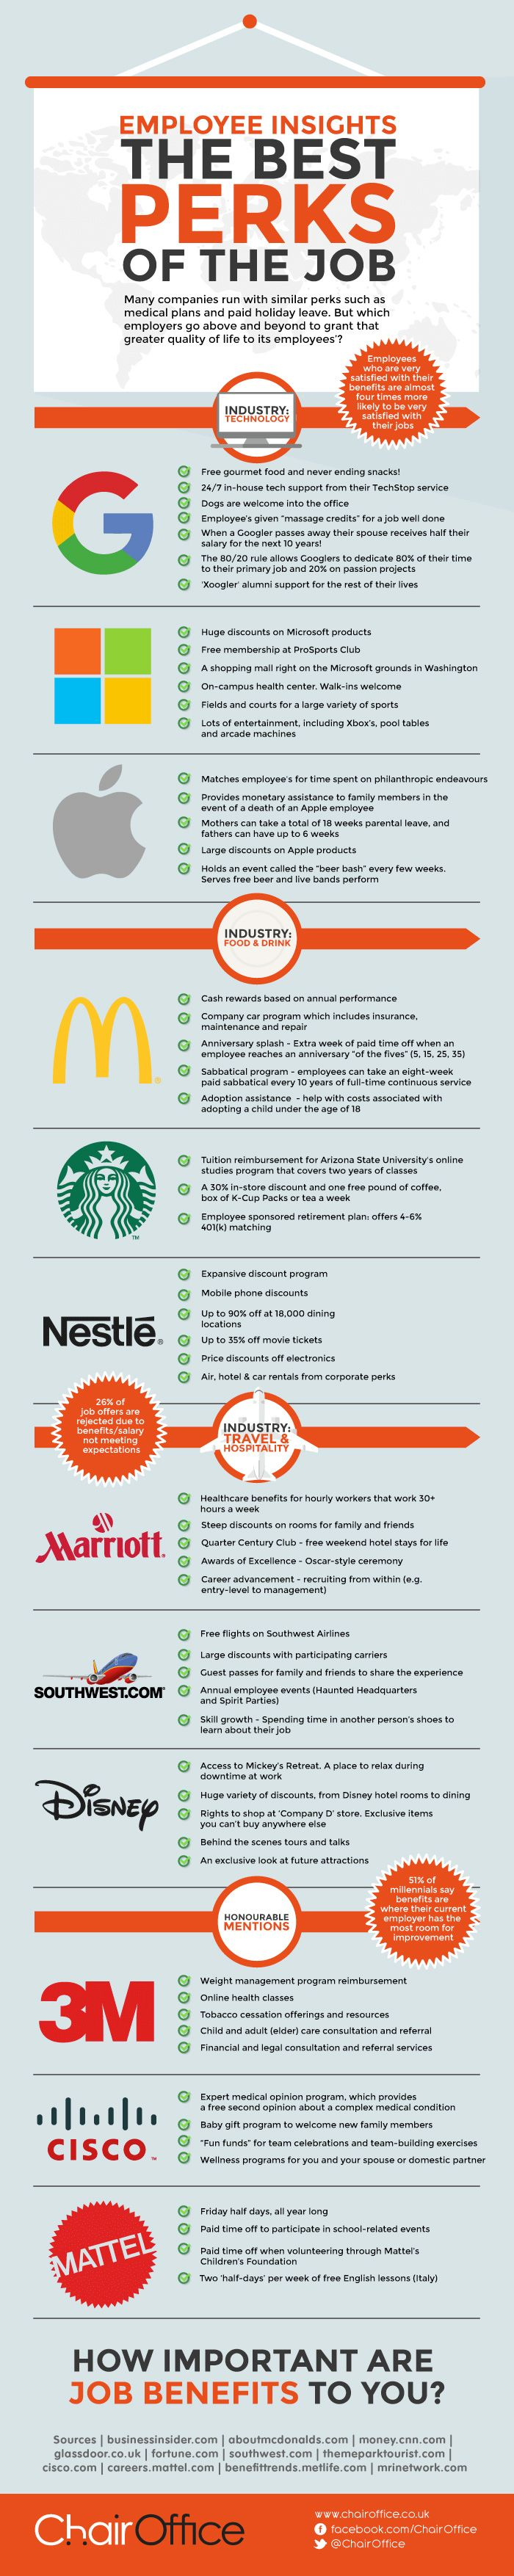 12 Companies With Over-the-Top Perks (Infographic)